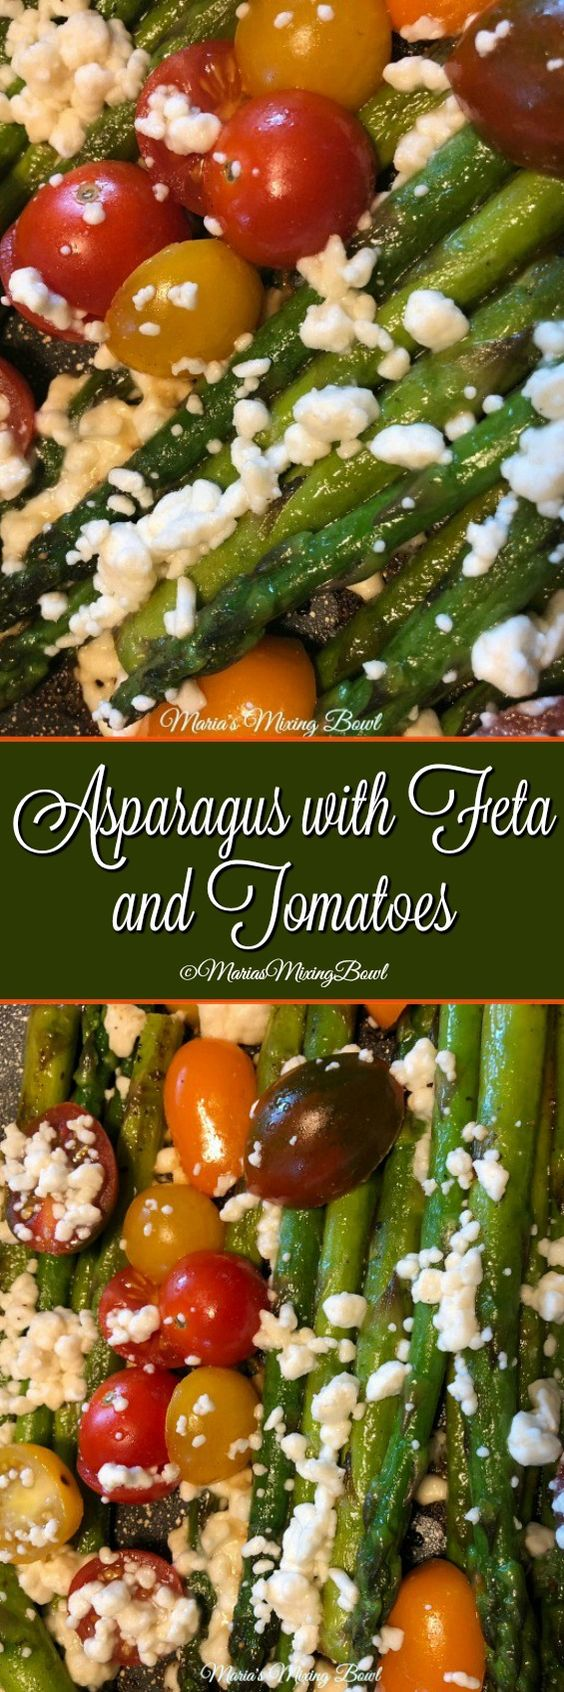 Asparagus with Feta and Tomatoes recipe is so delicious and takes less than 10 minutes to make! Crispy on the outside,  and tender on the inside and full of incredible flavor!